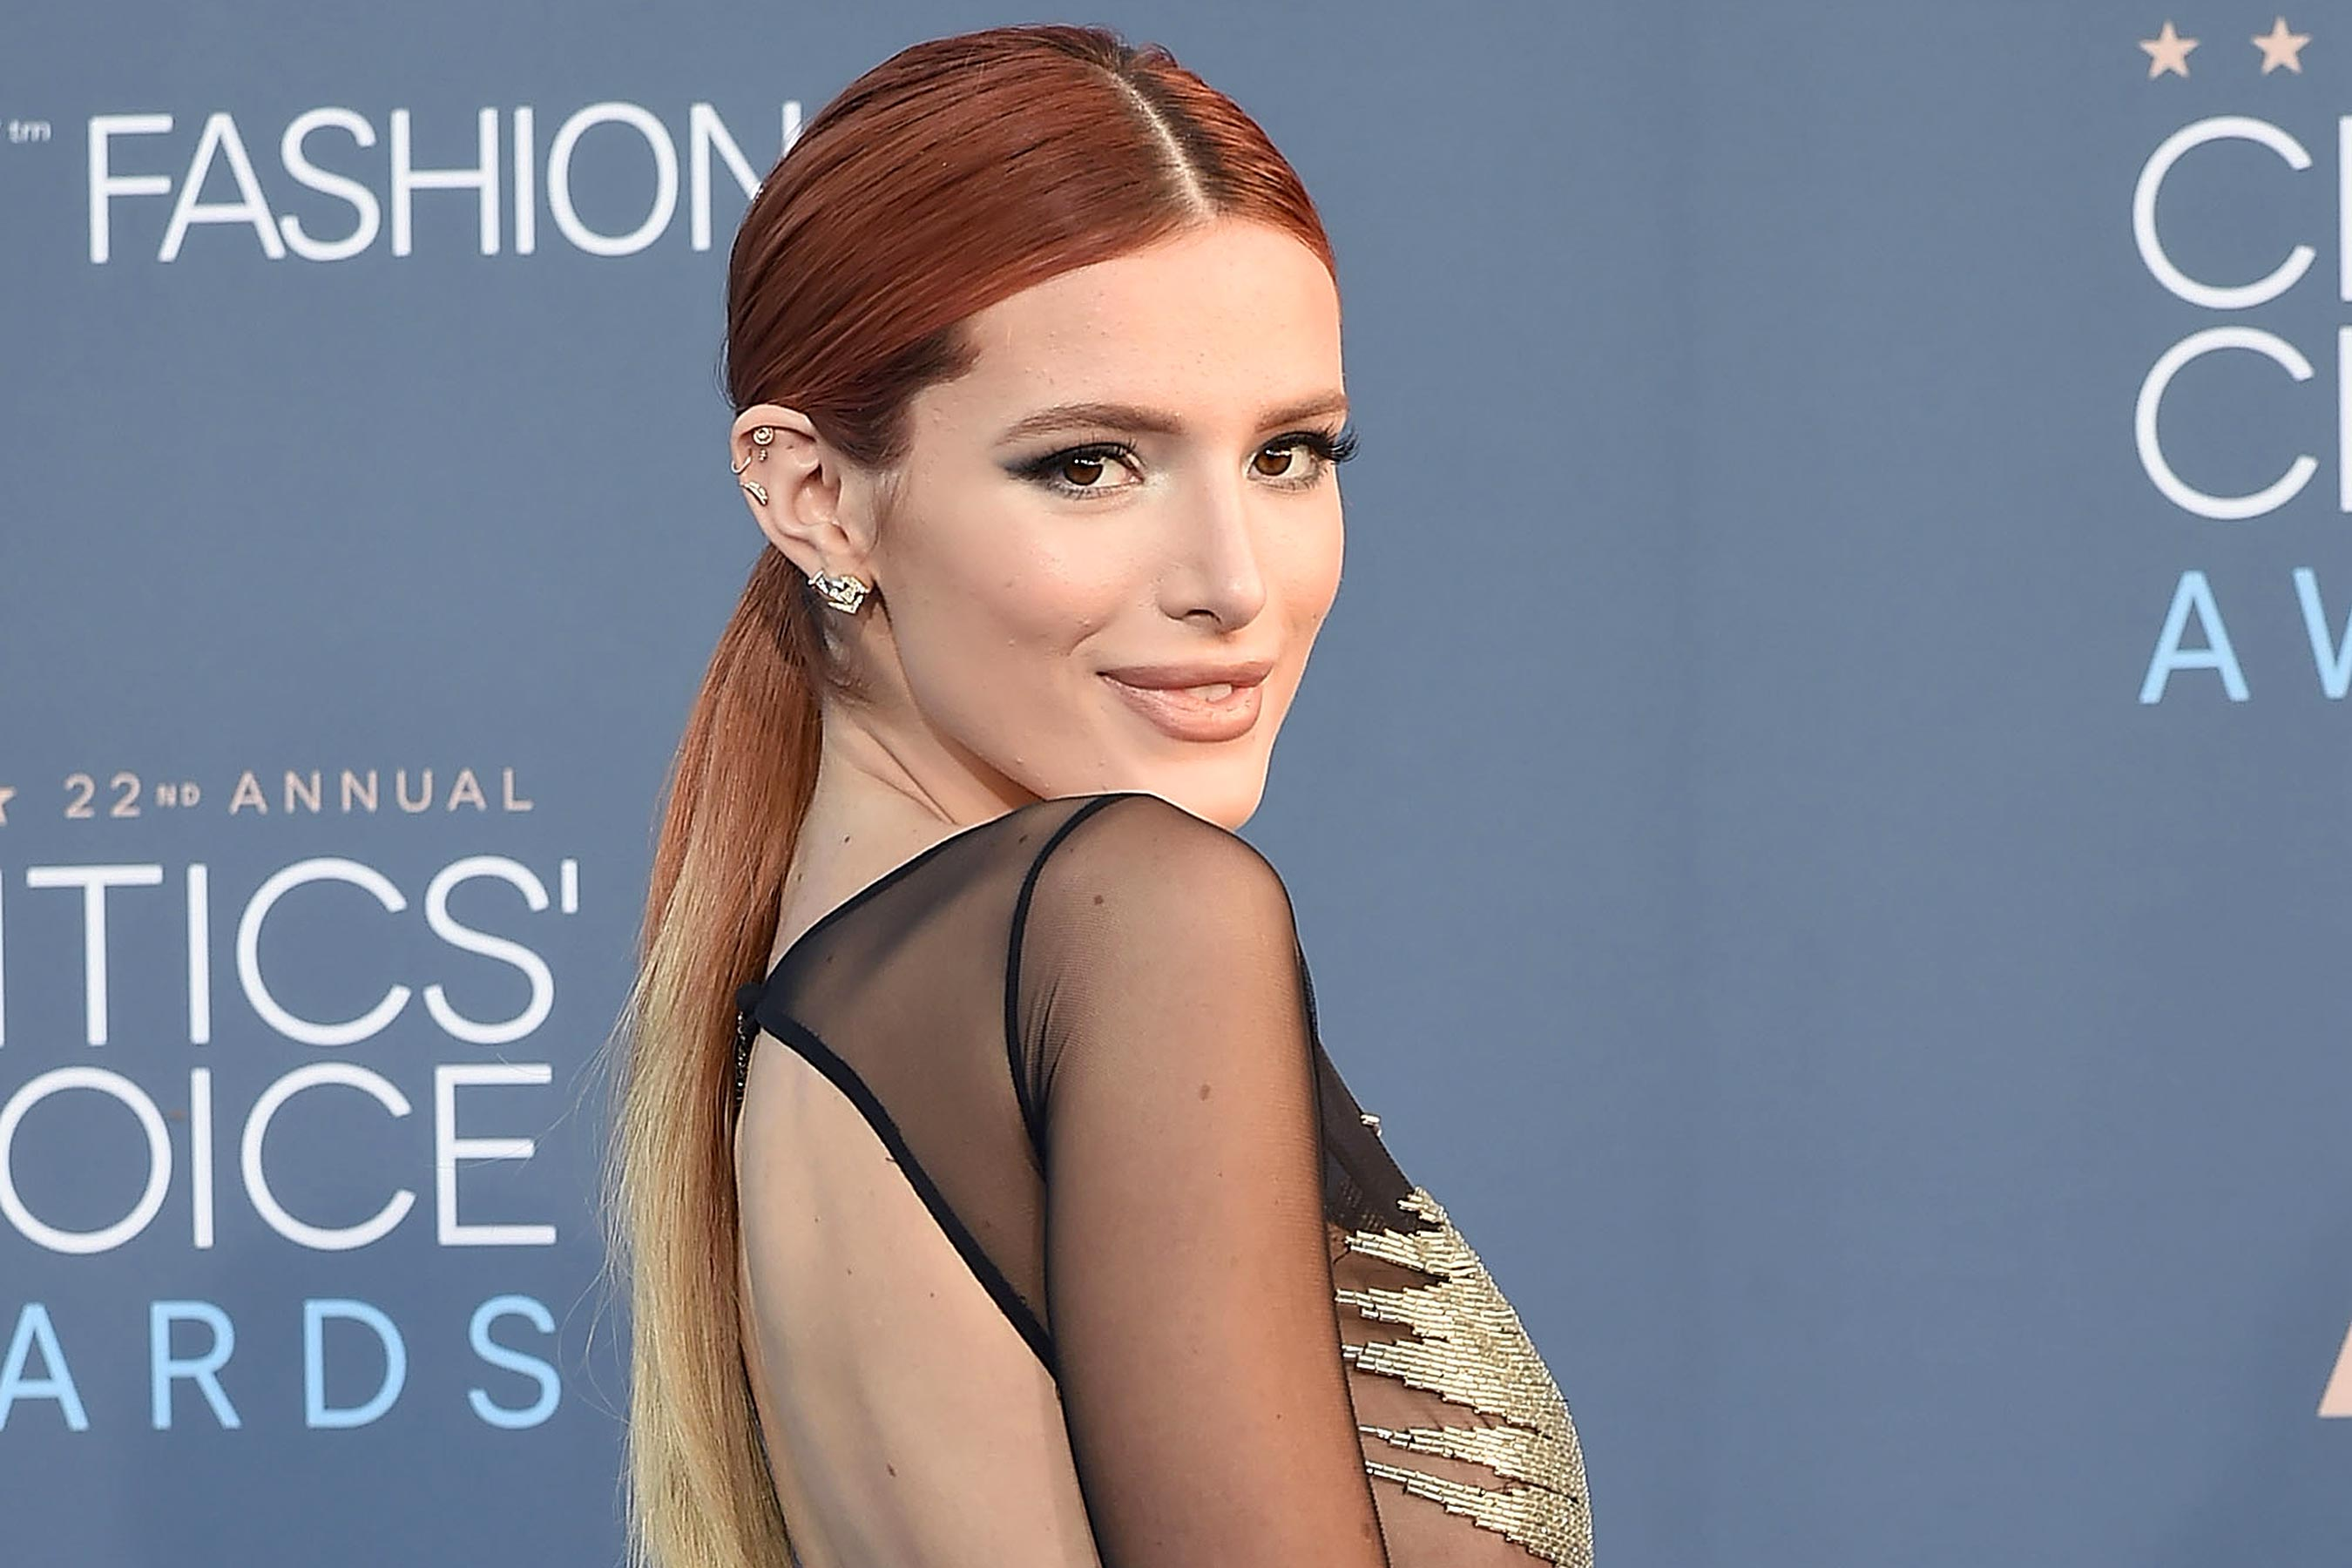 Bella Thorne describes physical and sexual abuse she endured until age 14